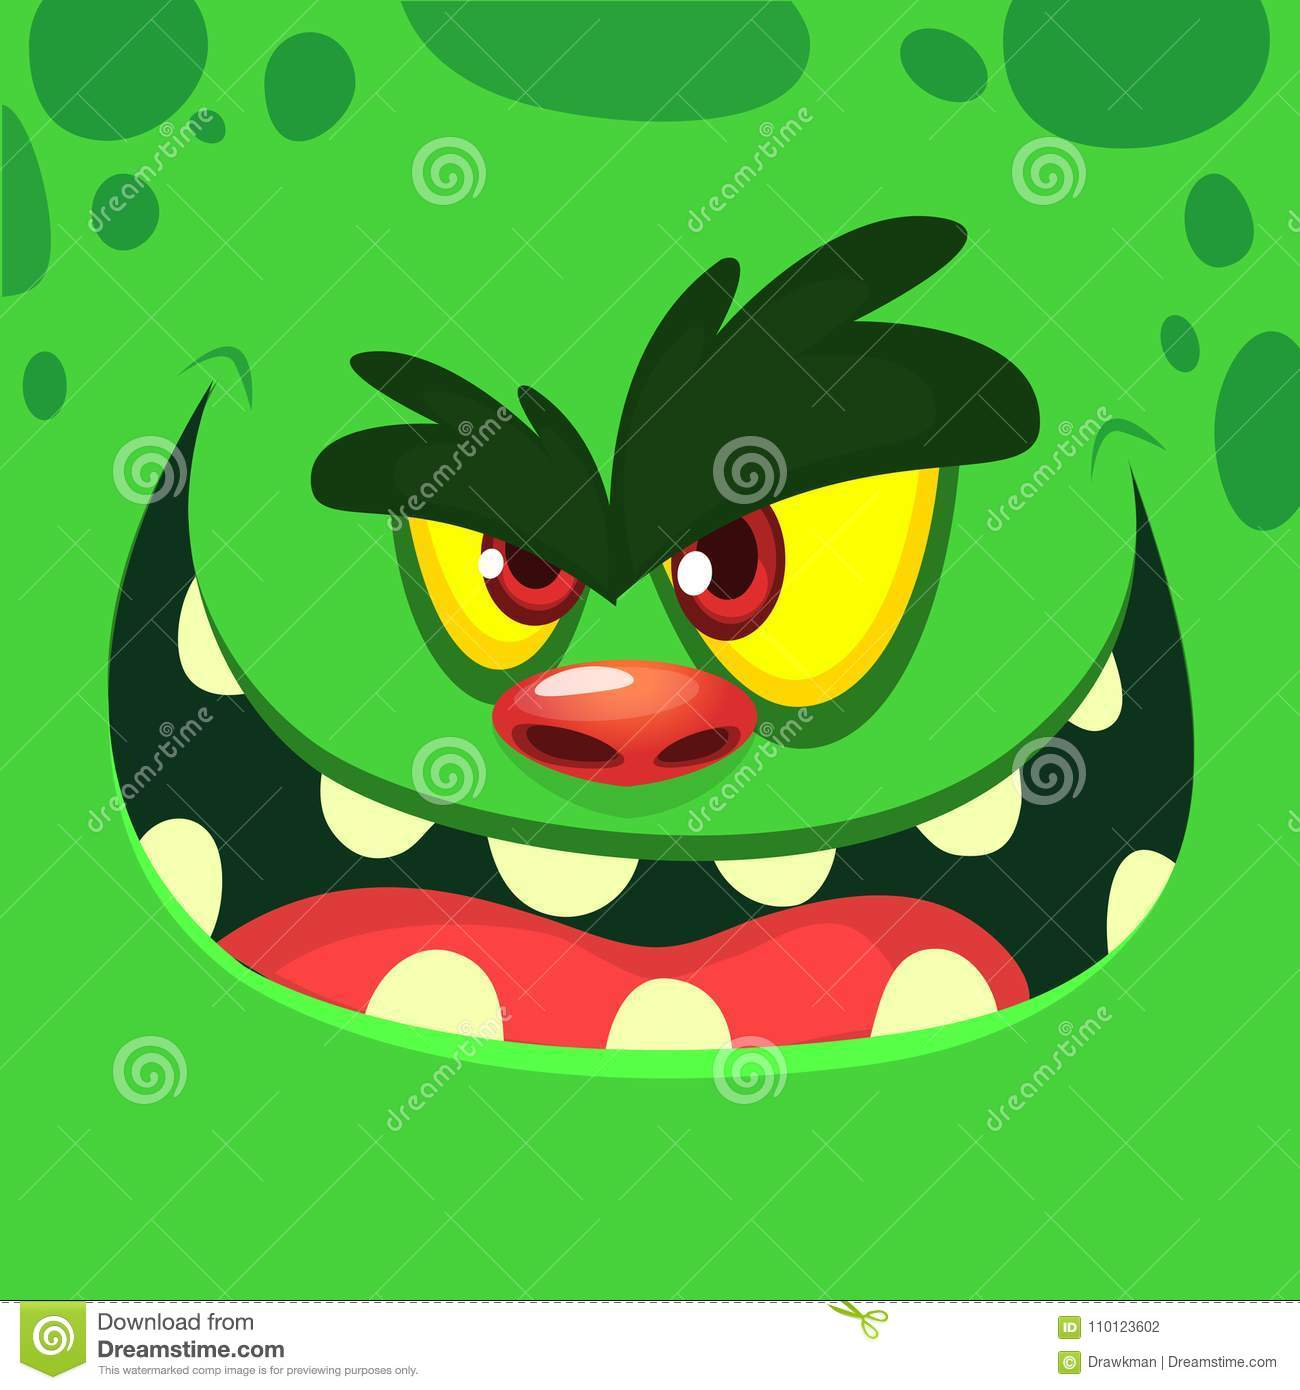 Cool Cartoon Green Monster Face. Vector Halloween illustration of excited zombie monster with wide smile.